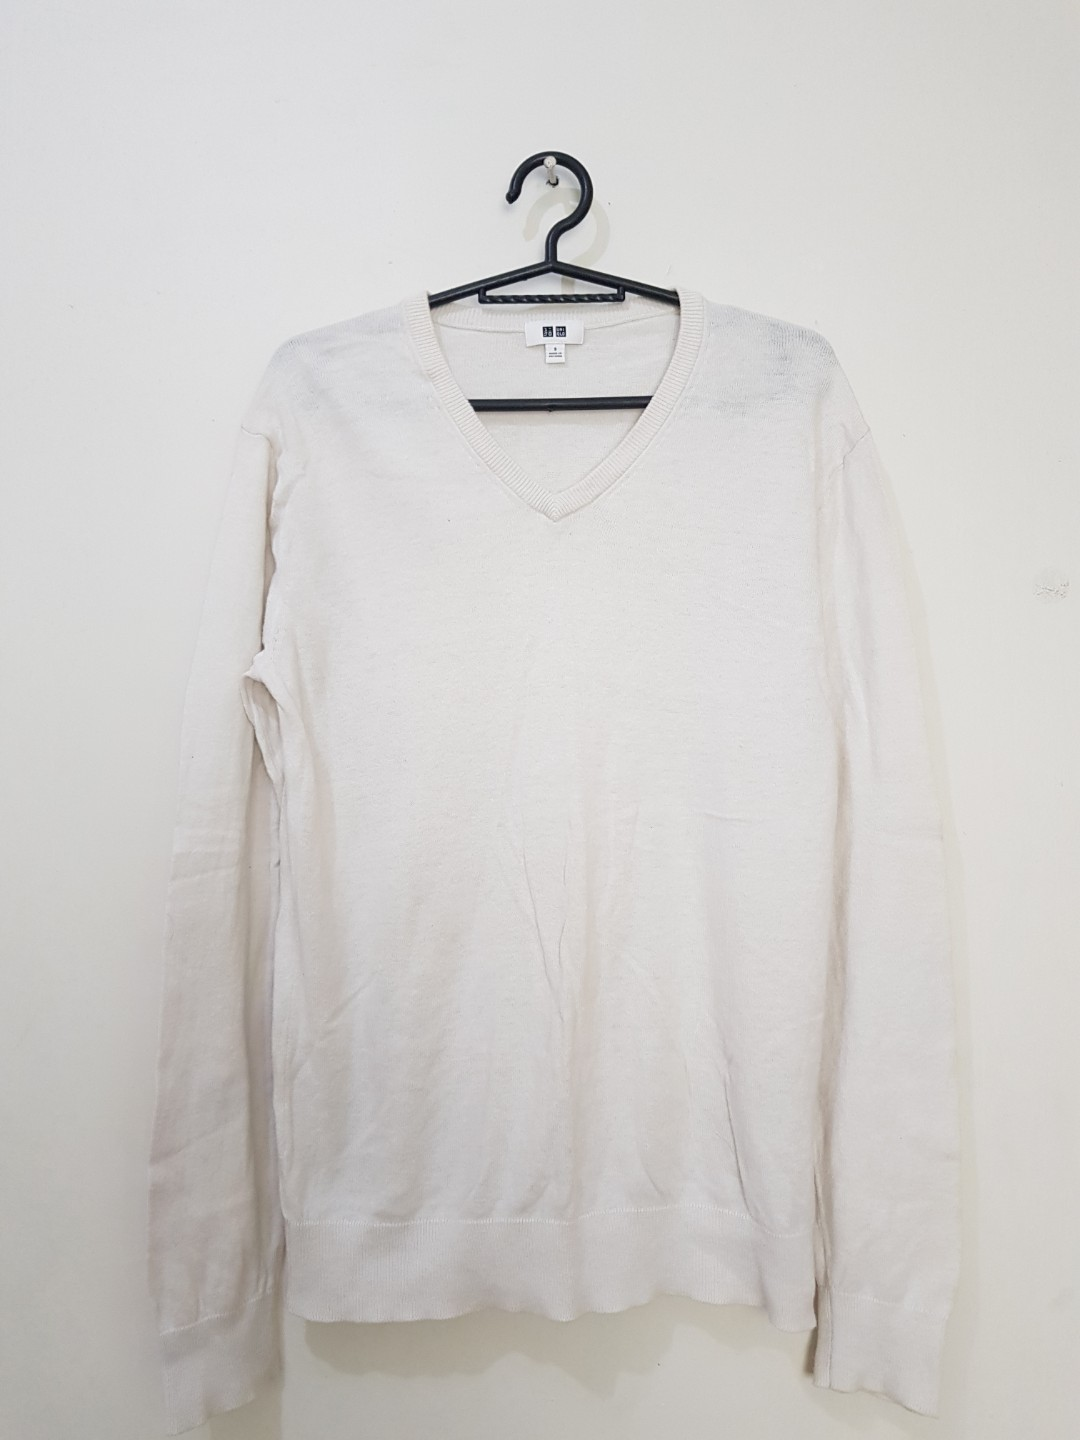 542d9910f04442 PRELOVED UNIQLO WHITE PULLOVER, Men's Fashion, Clothes on Carousell